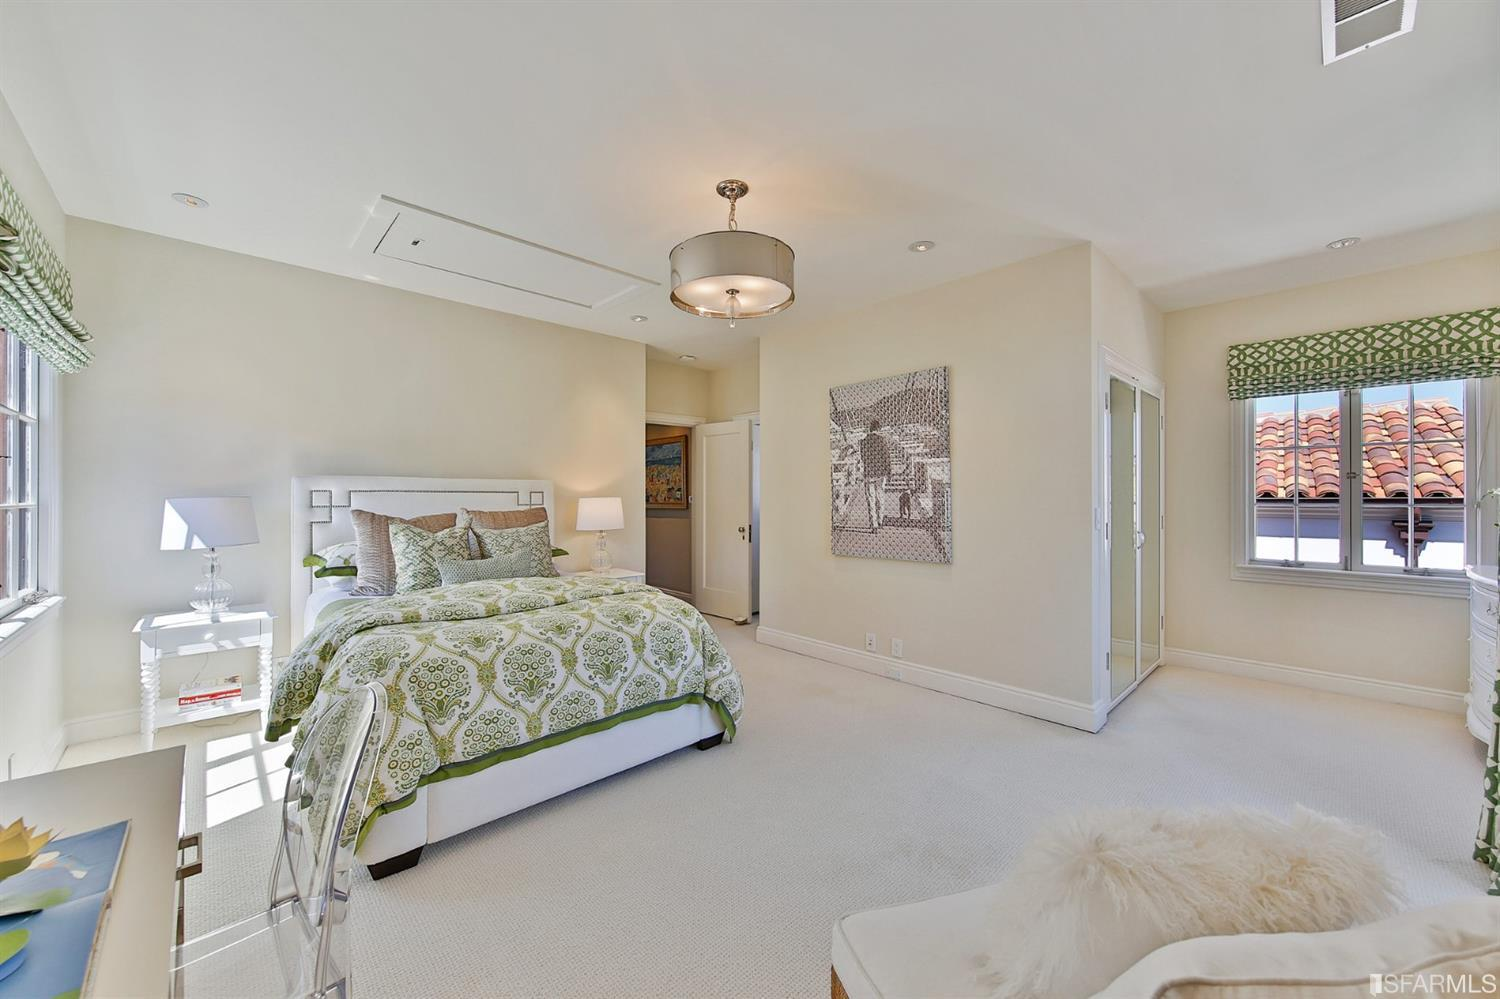 Bedroom 2 also spacious in size has en suite bath, juliette balcony and beautiful views of the neighborhood.